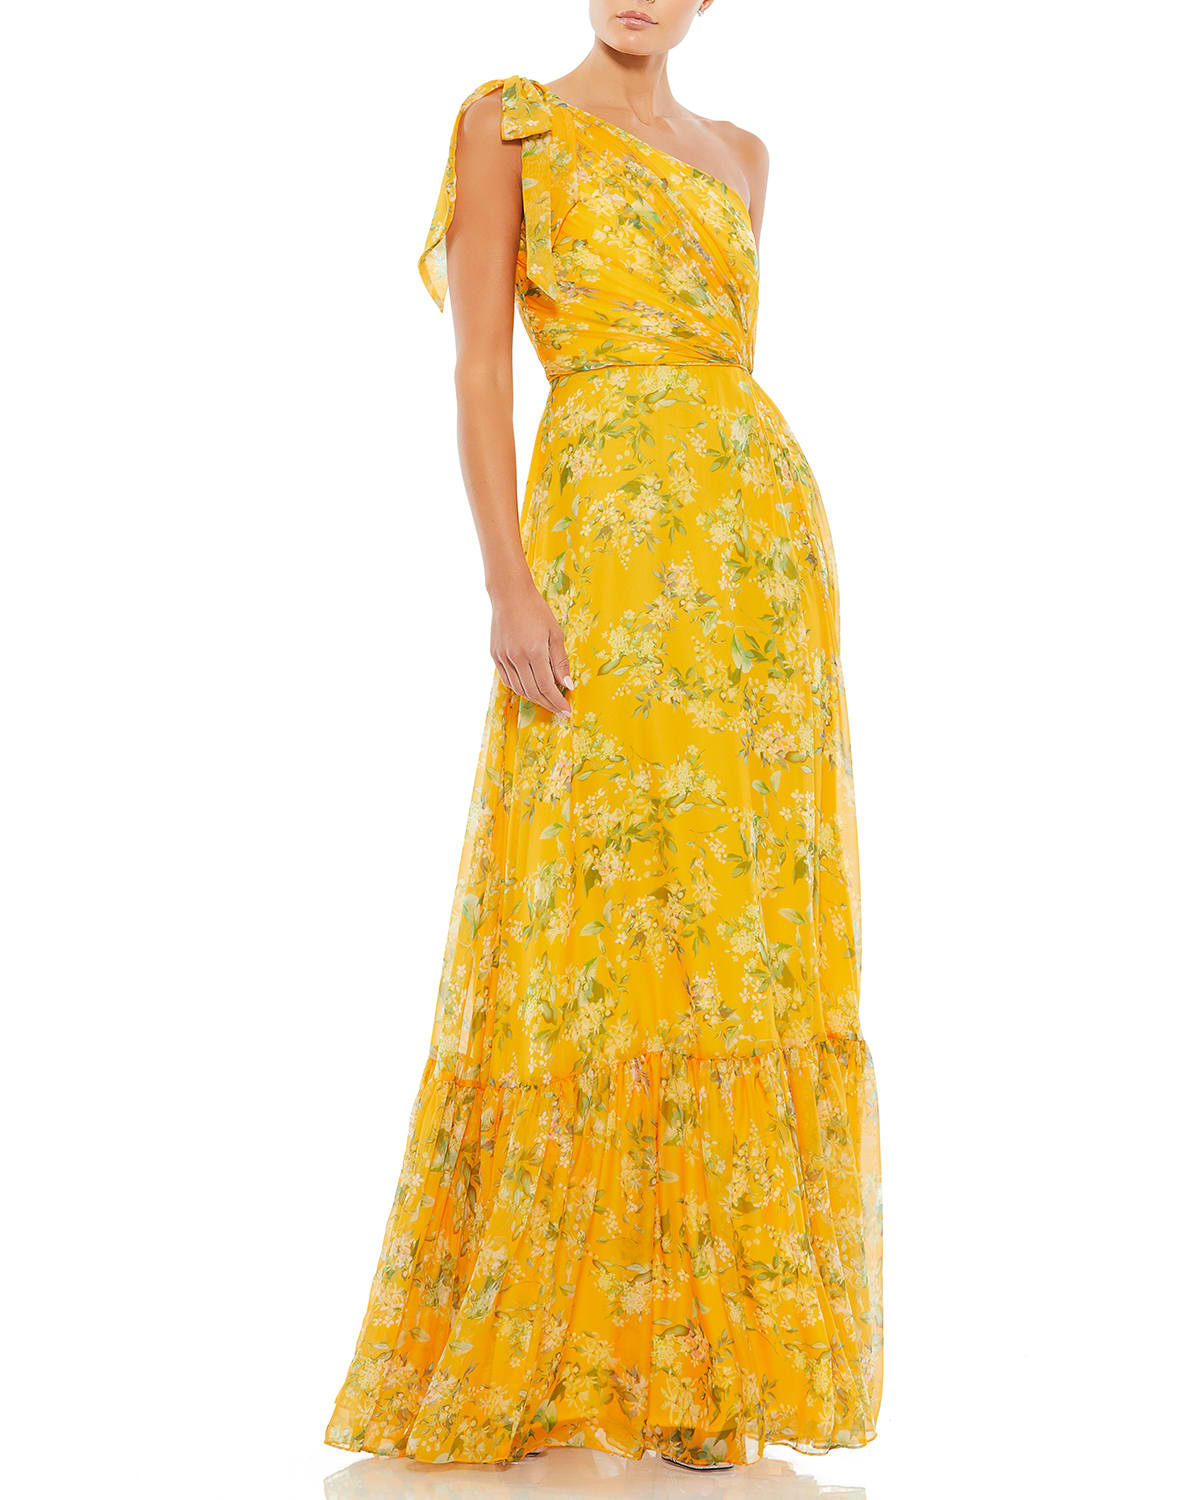 Floral Chiffon One-Shoulder Ruffle Gown